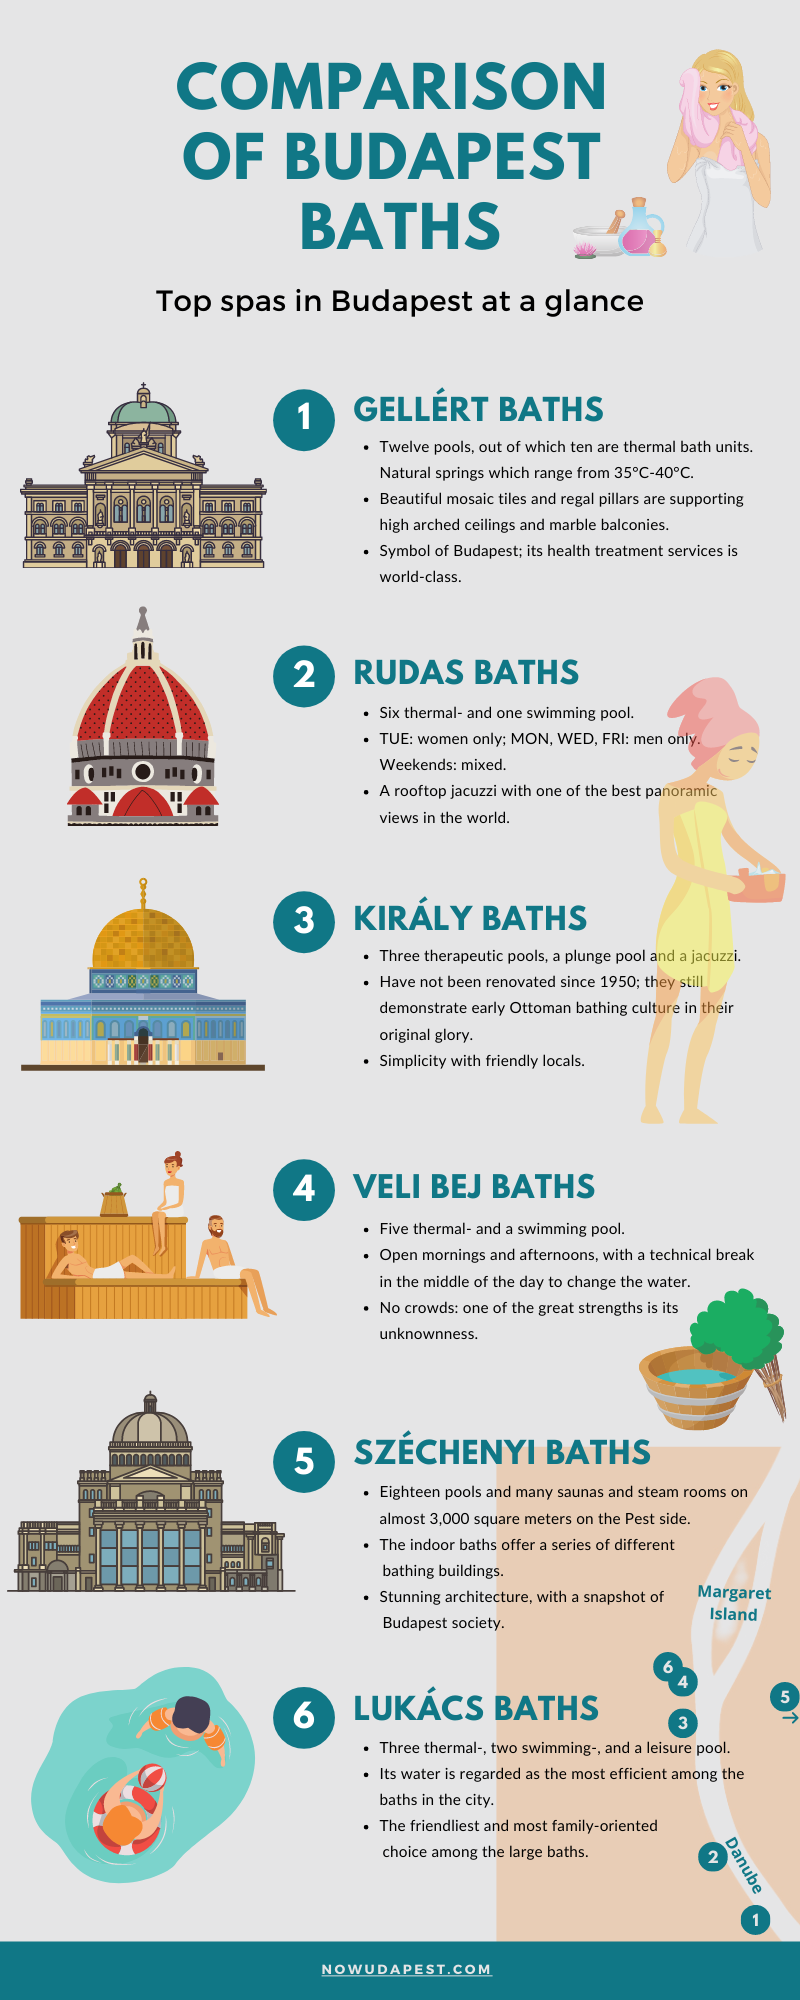 Comparison of Budapest Baths